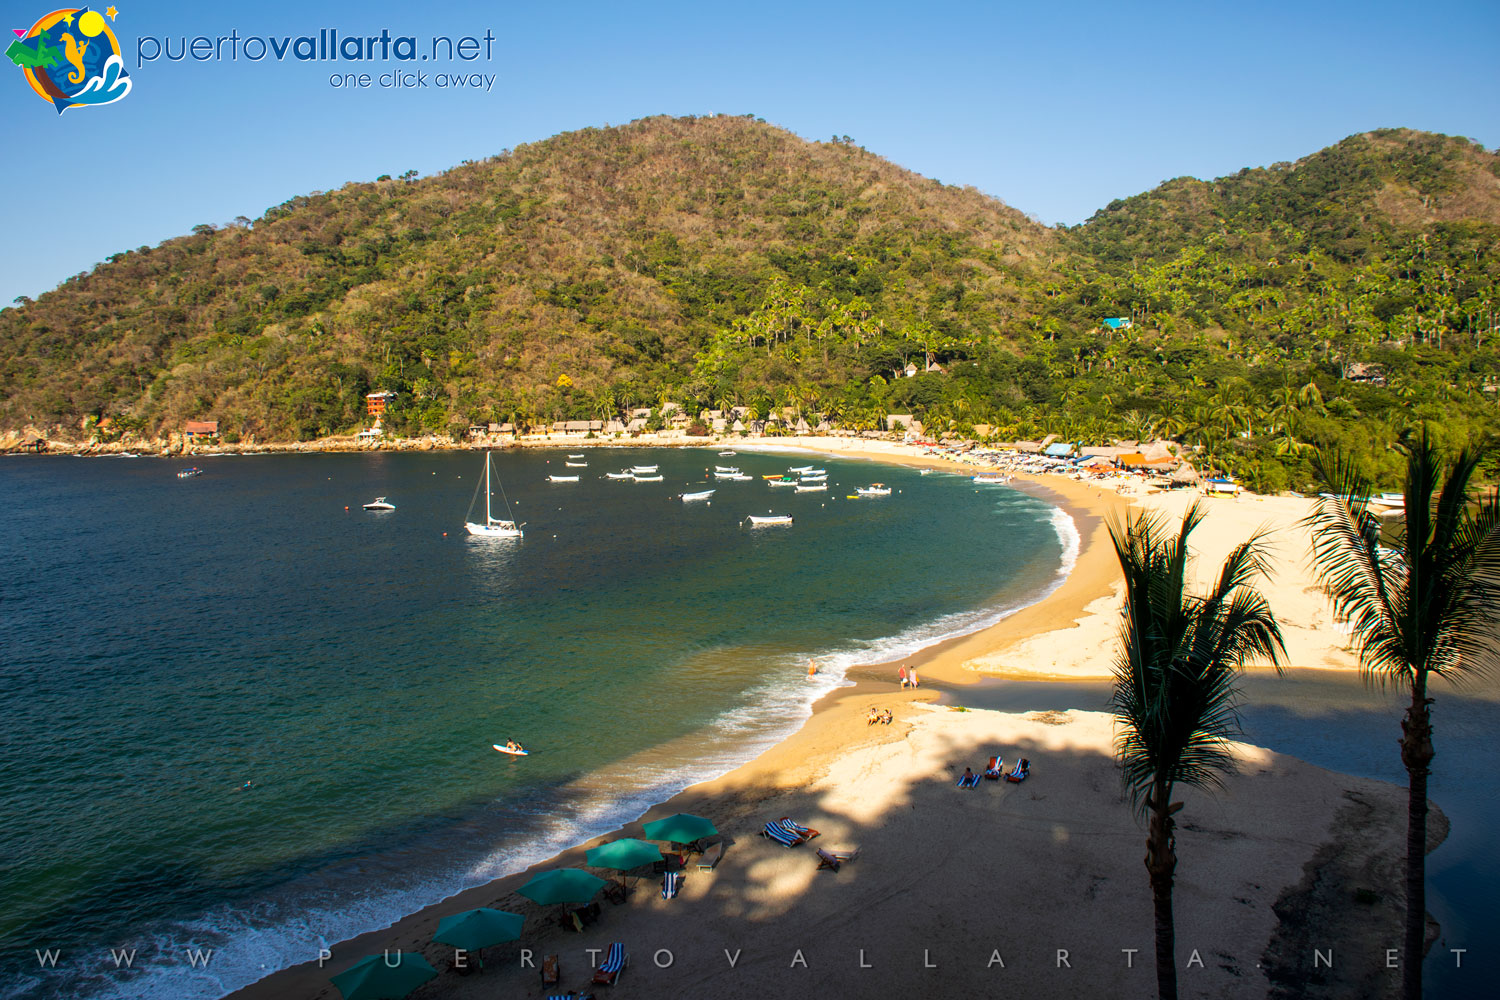 Yelapa's Main Beach from the west and El Tuito River mouth (Cabo Corrientes, Jalisco, Mexico)